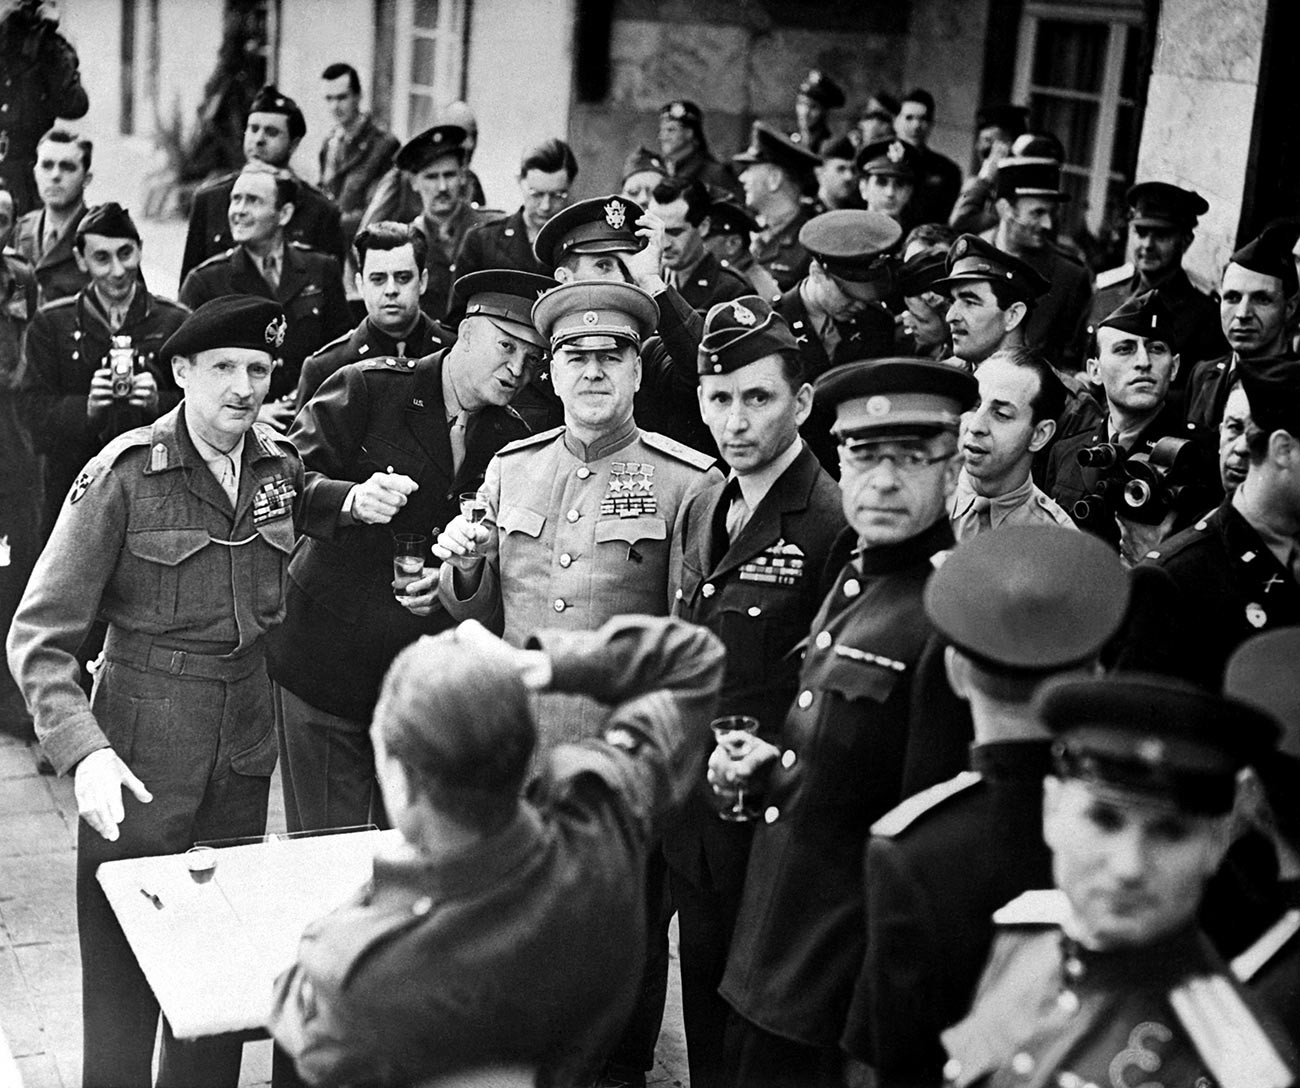 British Field Marshal Bernard Montgomery (left, wearing beret) was awarded the Order of Victory on June 5, 1945. American general Dwight Eisenhower and Soviet field marshal Georgy Zhukov, also recipients of the Order of Victory, are to the right of Montgomery.